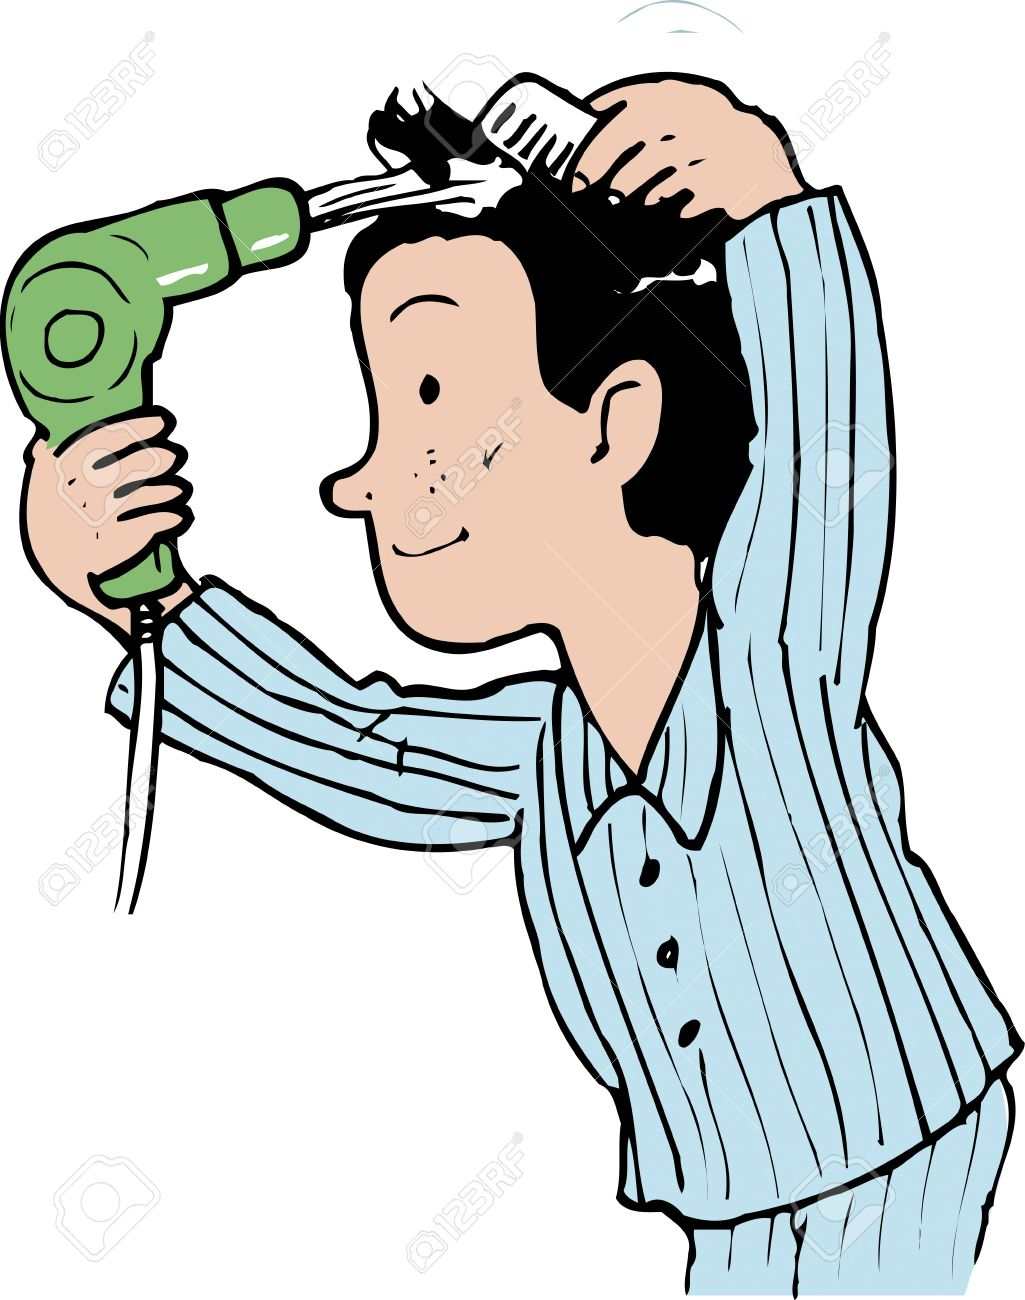 I Brush My Hair Clipart.